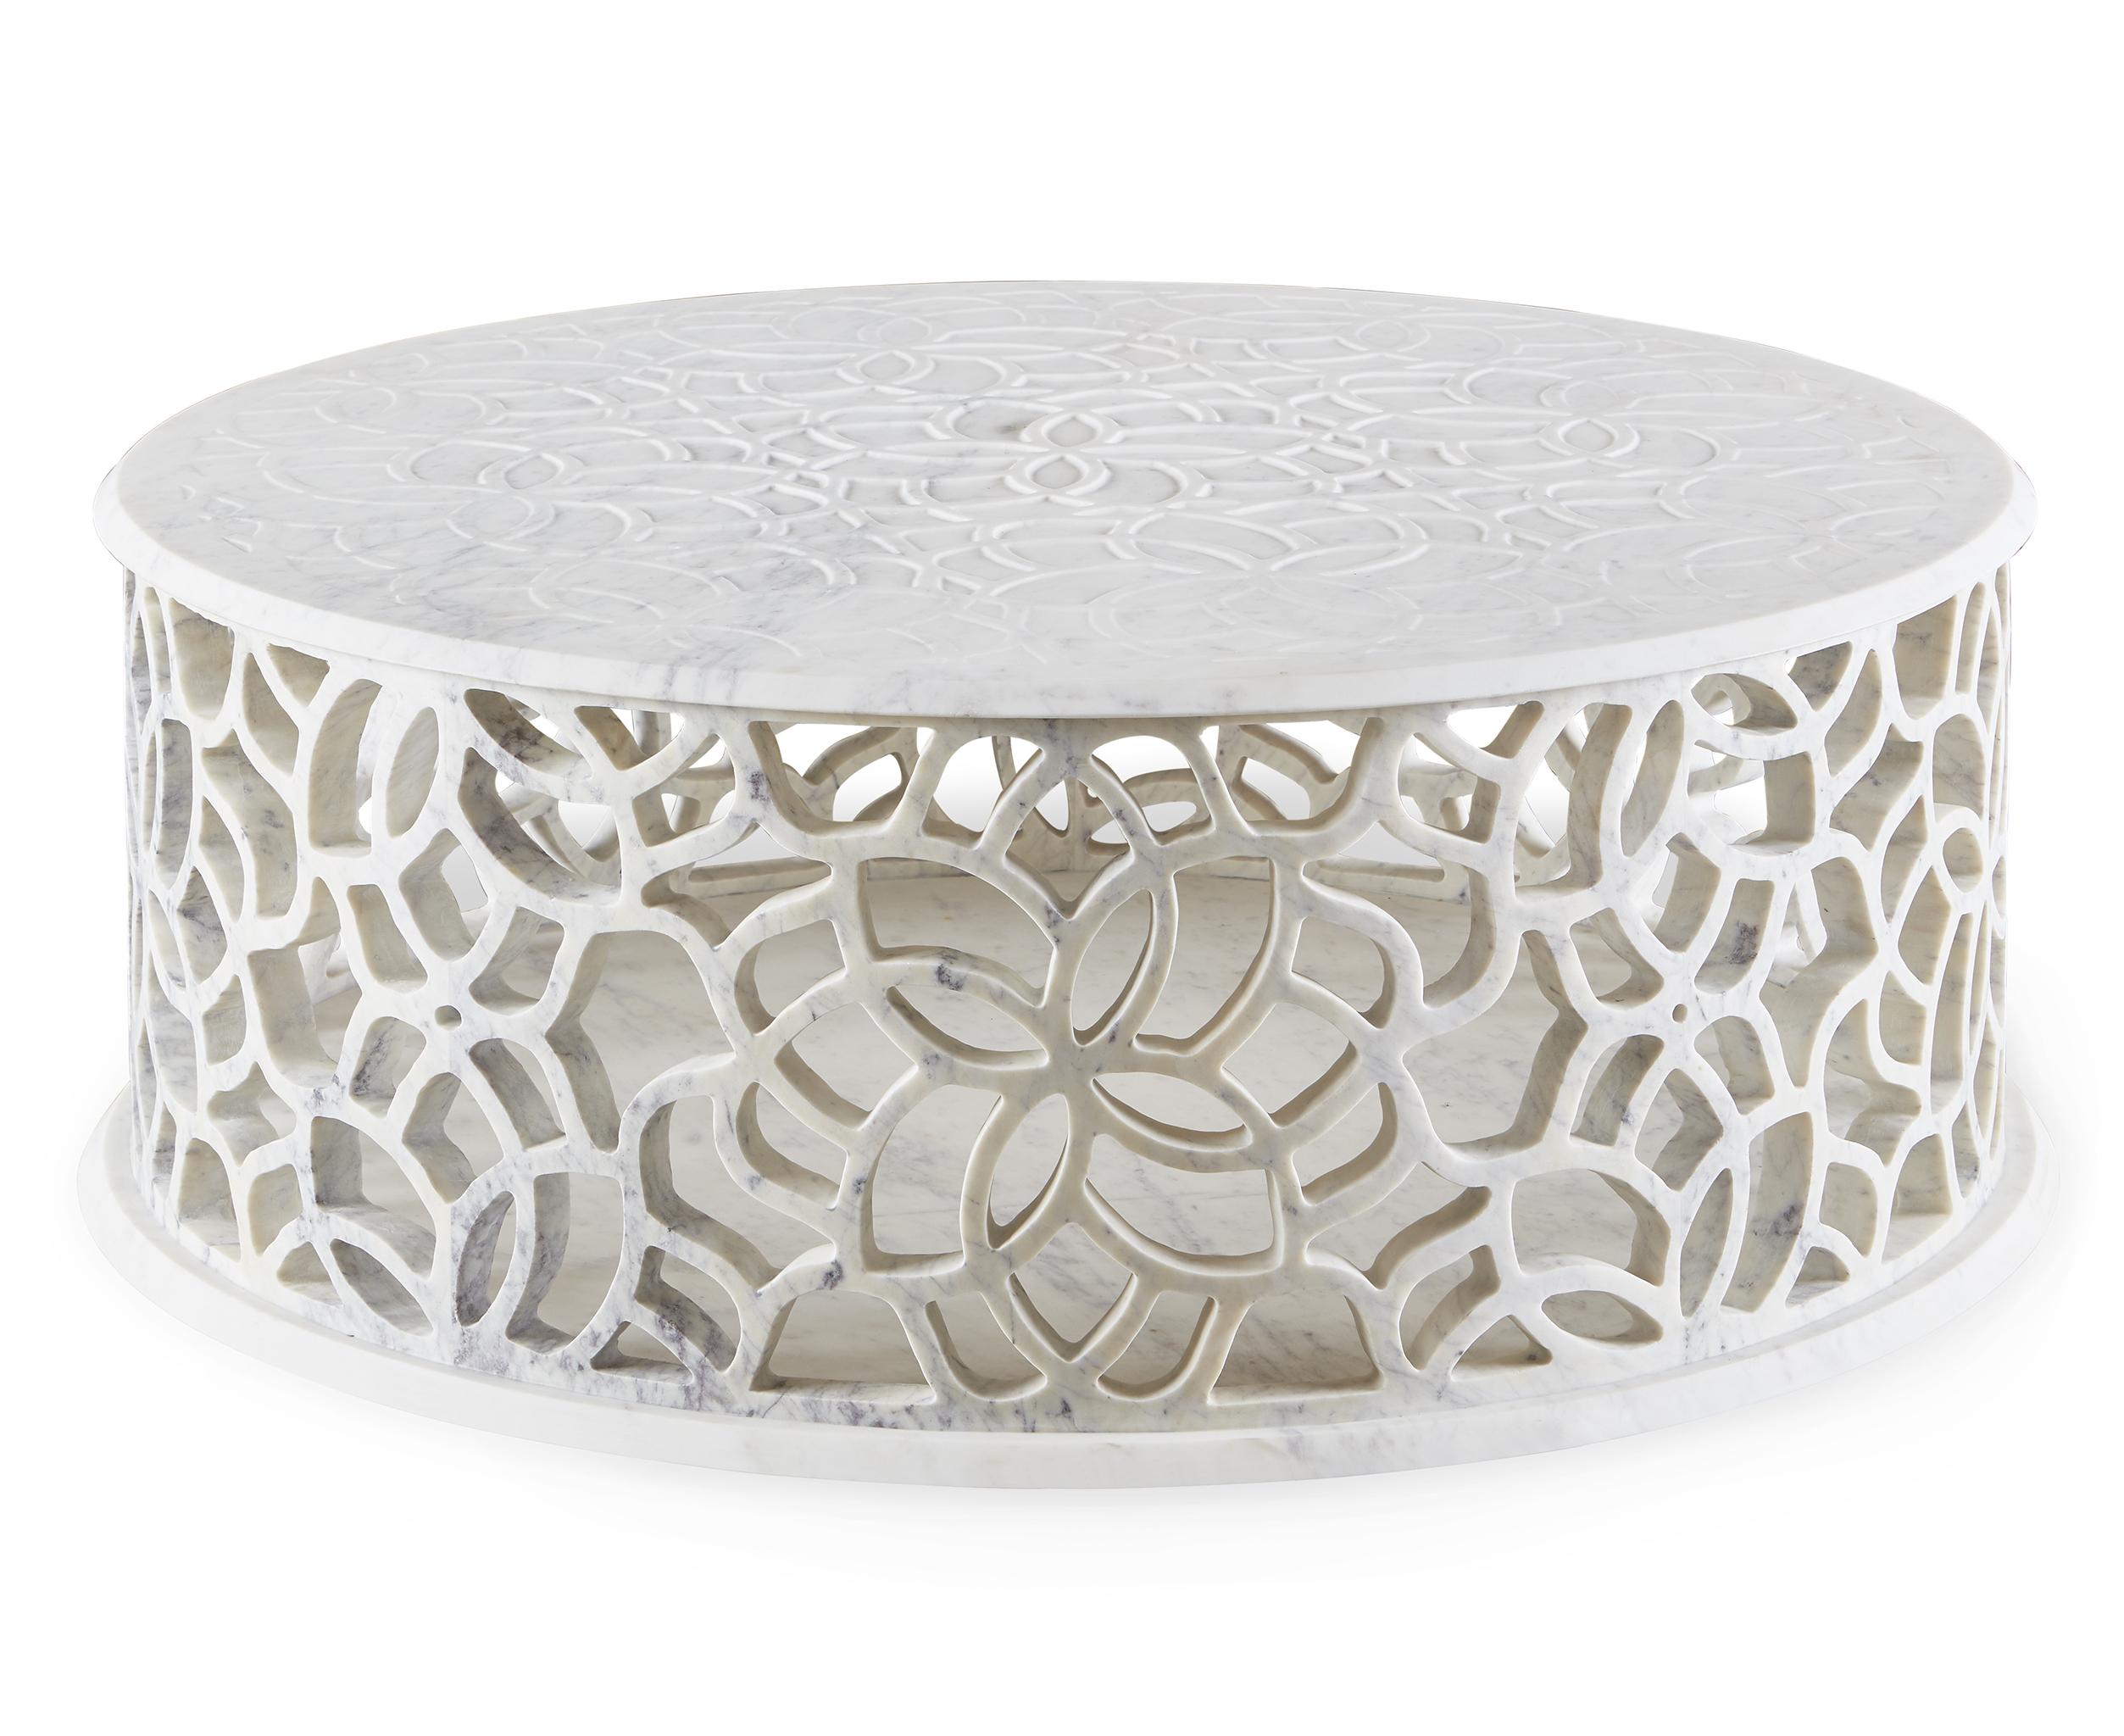 Baker_products_WNWN_pierced_bangle_table_BAA3255_FRONT_resize-1-1